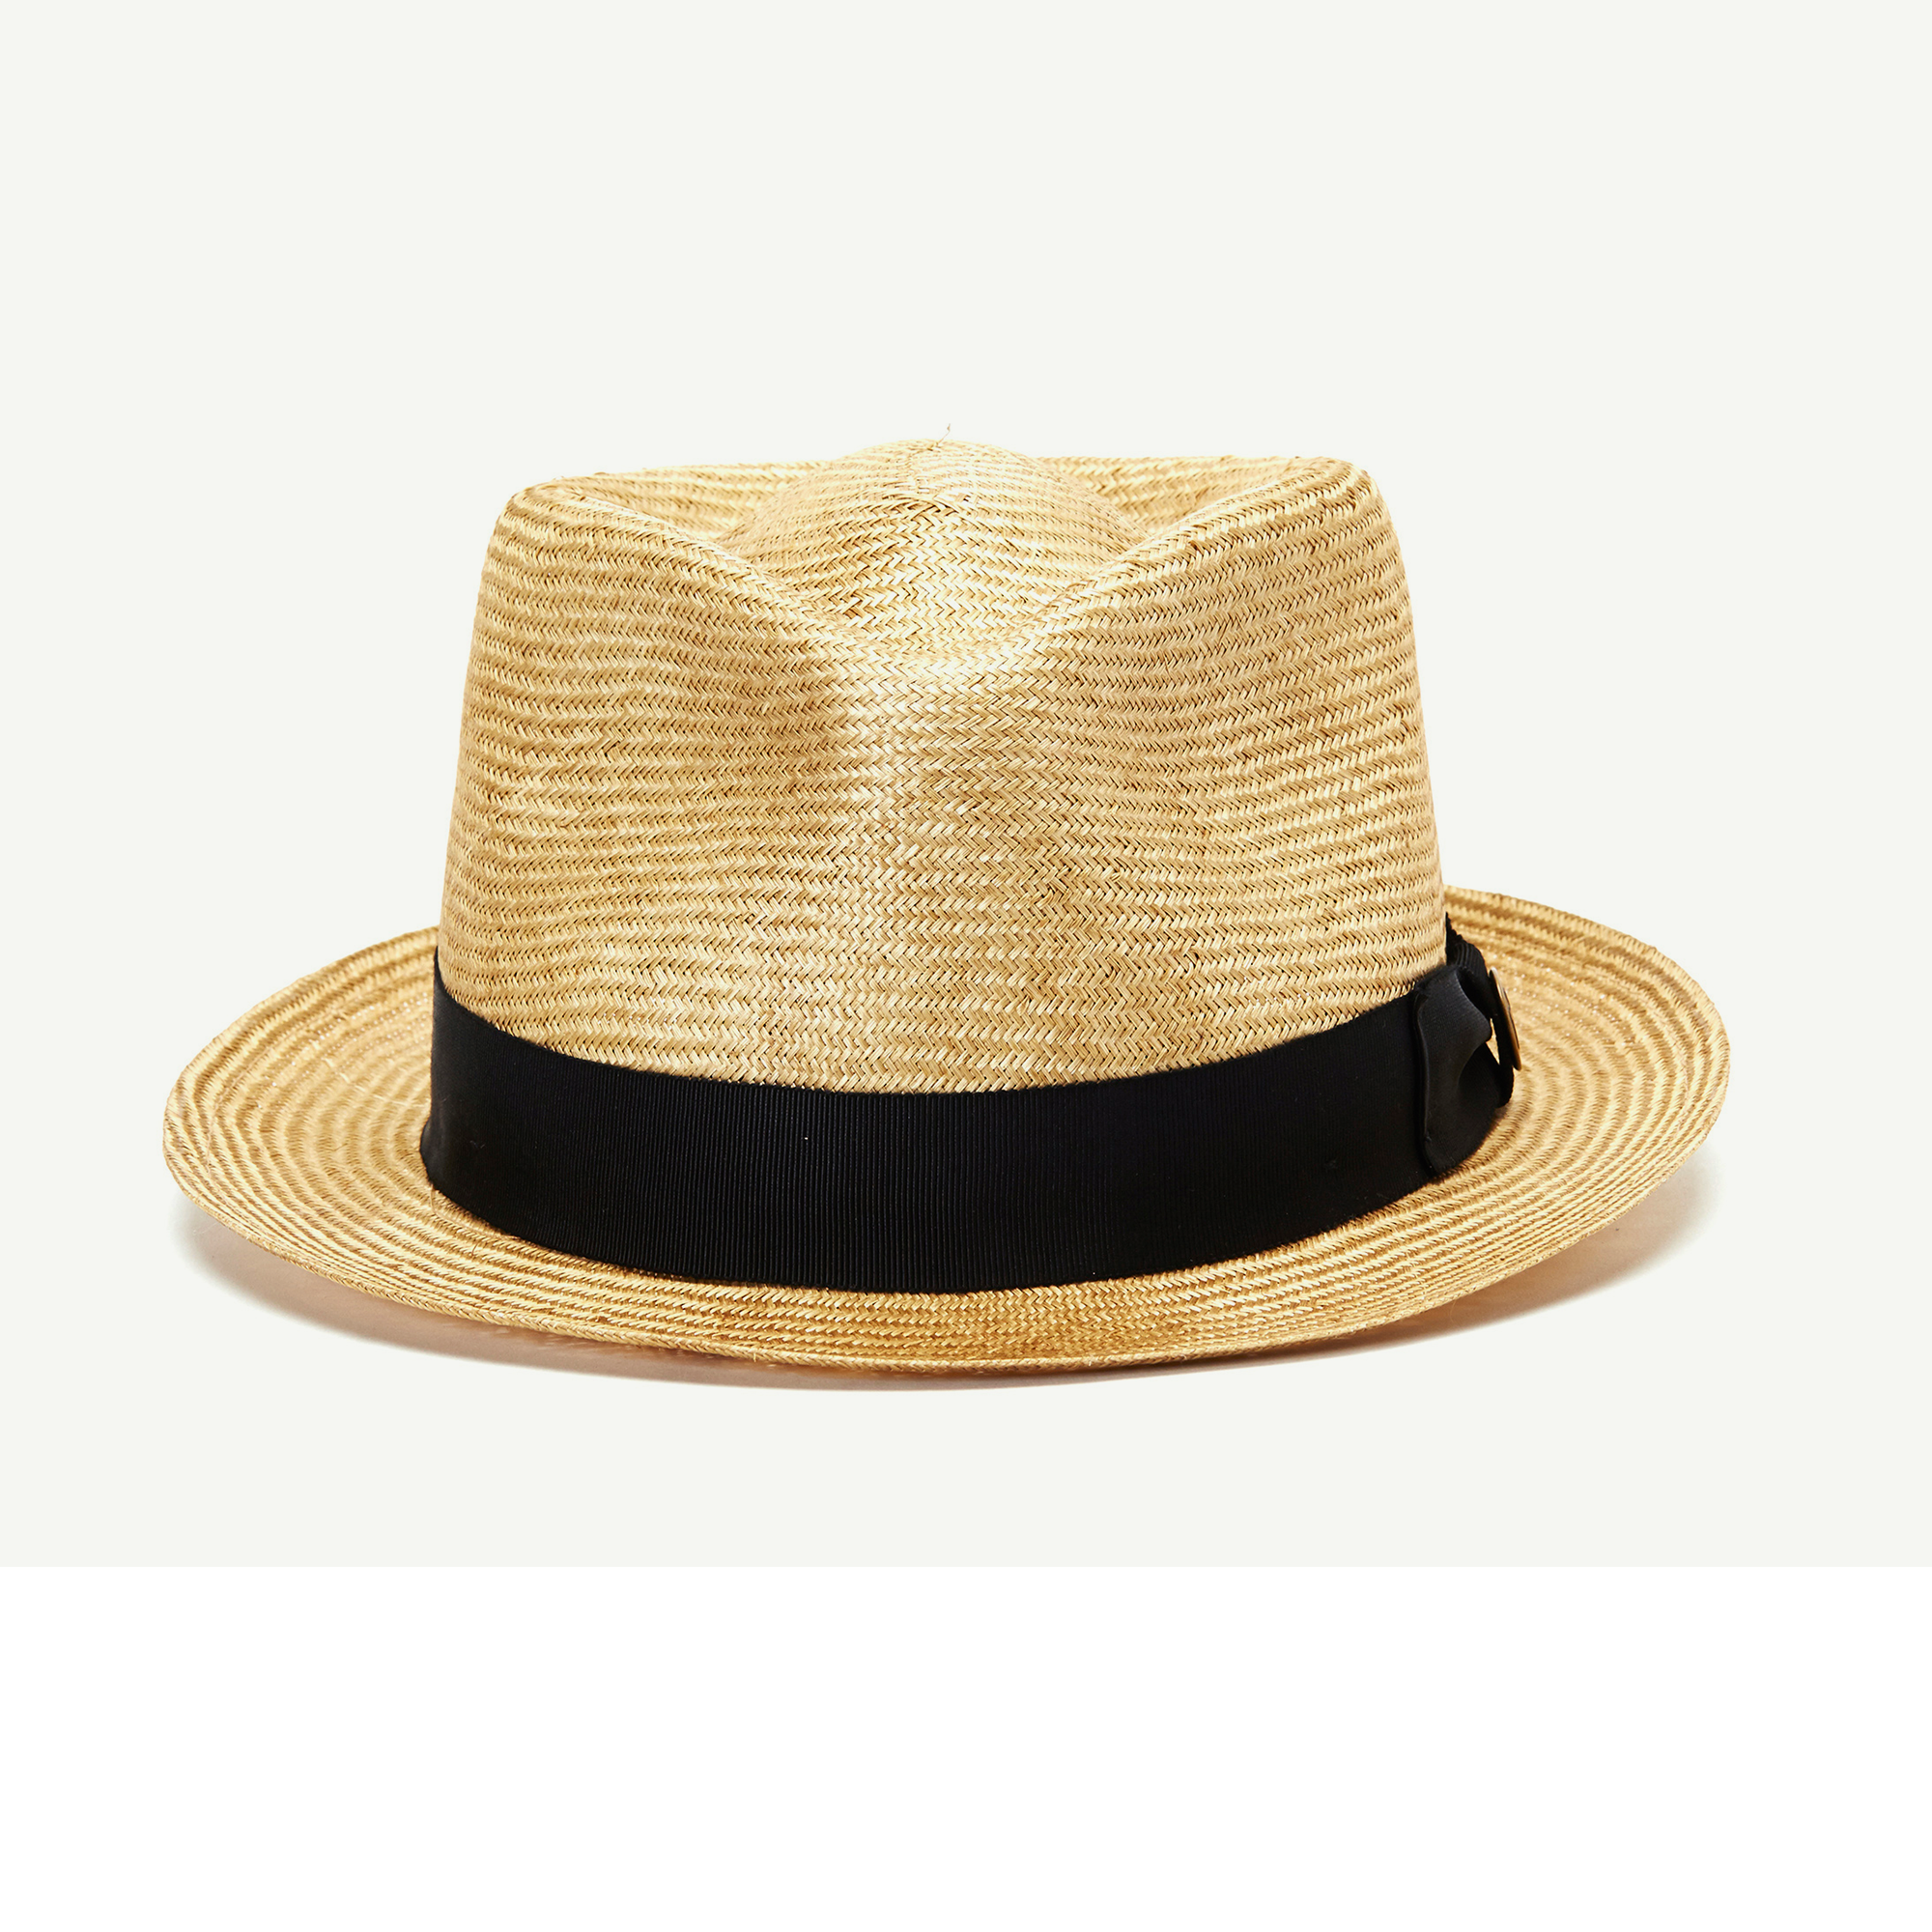 624d946fd9186 Tad Stanton Camel Straw Stingy Brim Fedora hat front view